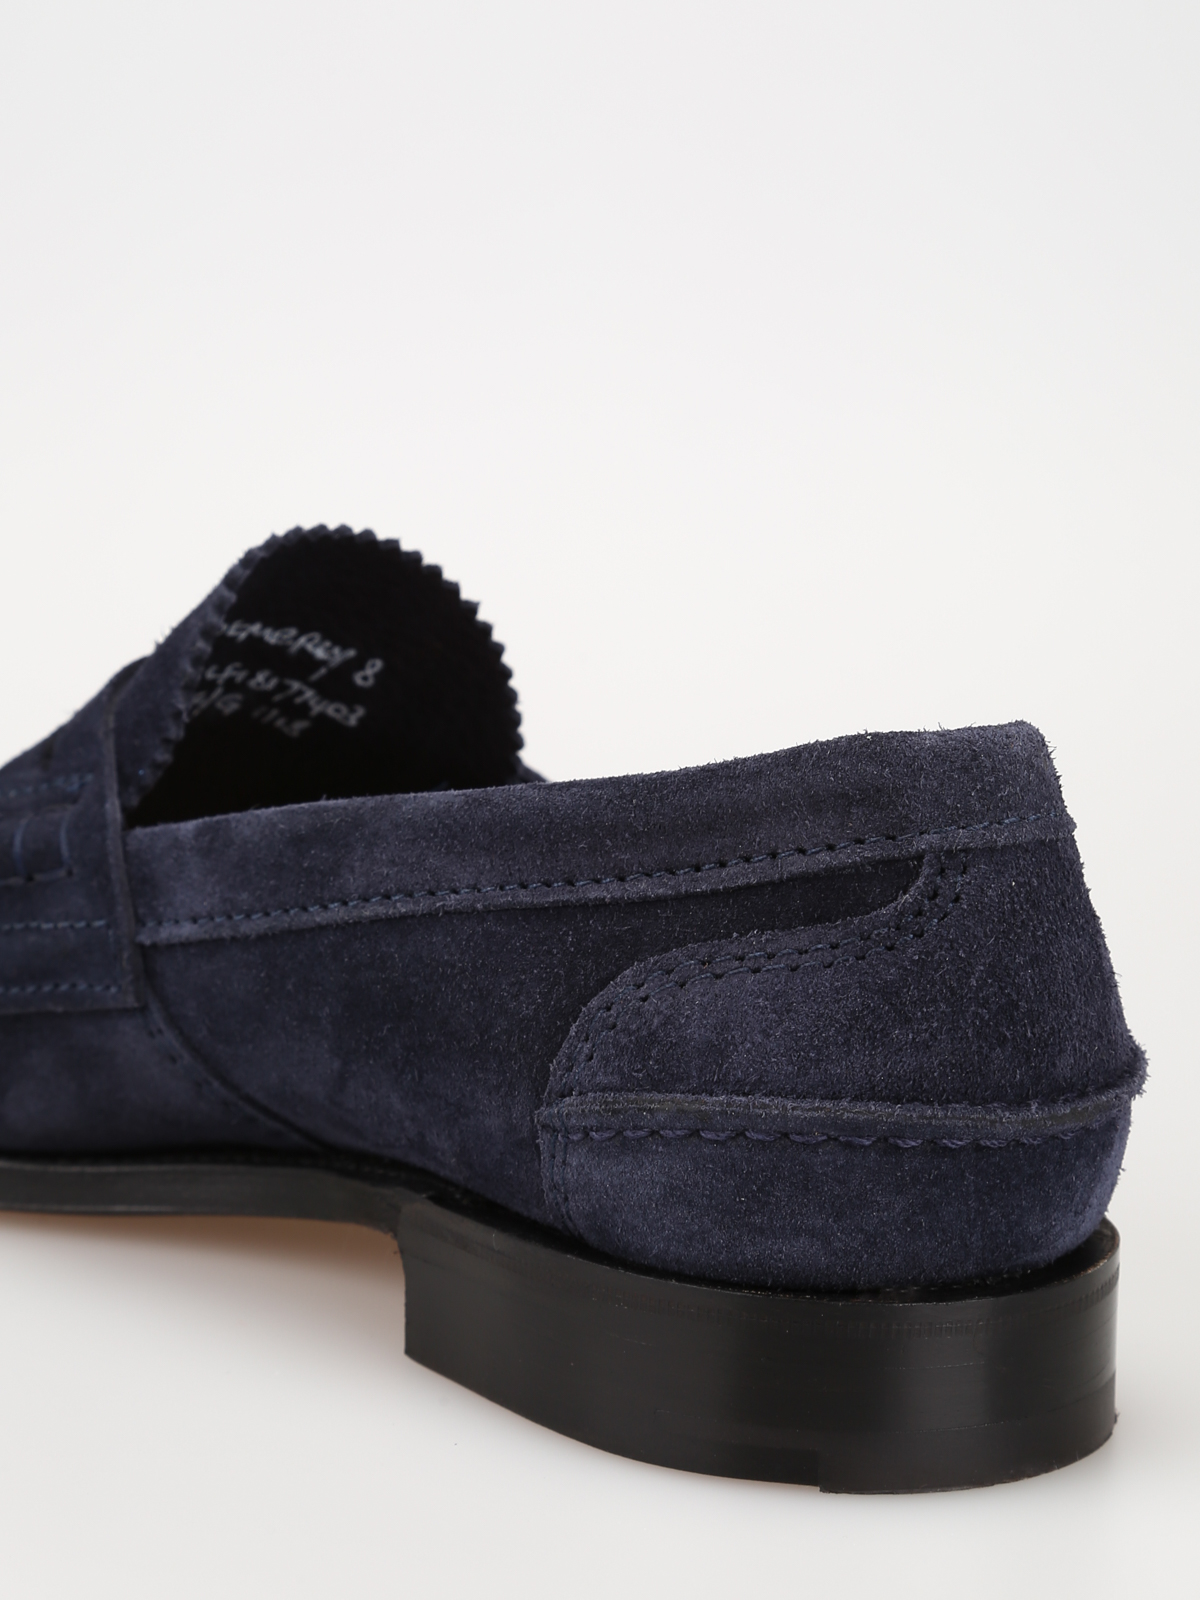 ab6d86e5f41 Church s - Navy blue Pembrey soft suede loafers - Loafers   Slippers ...